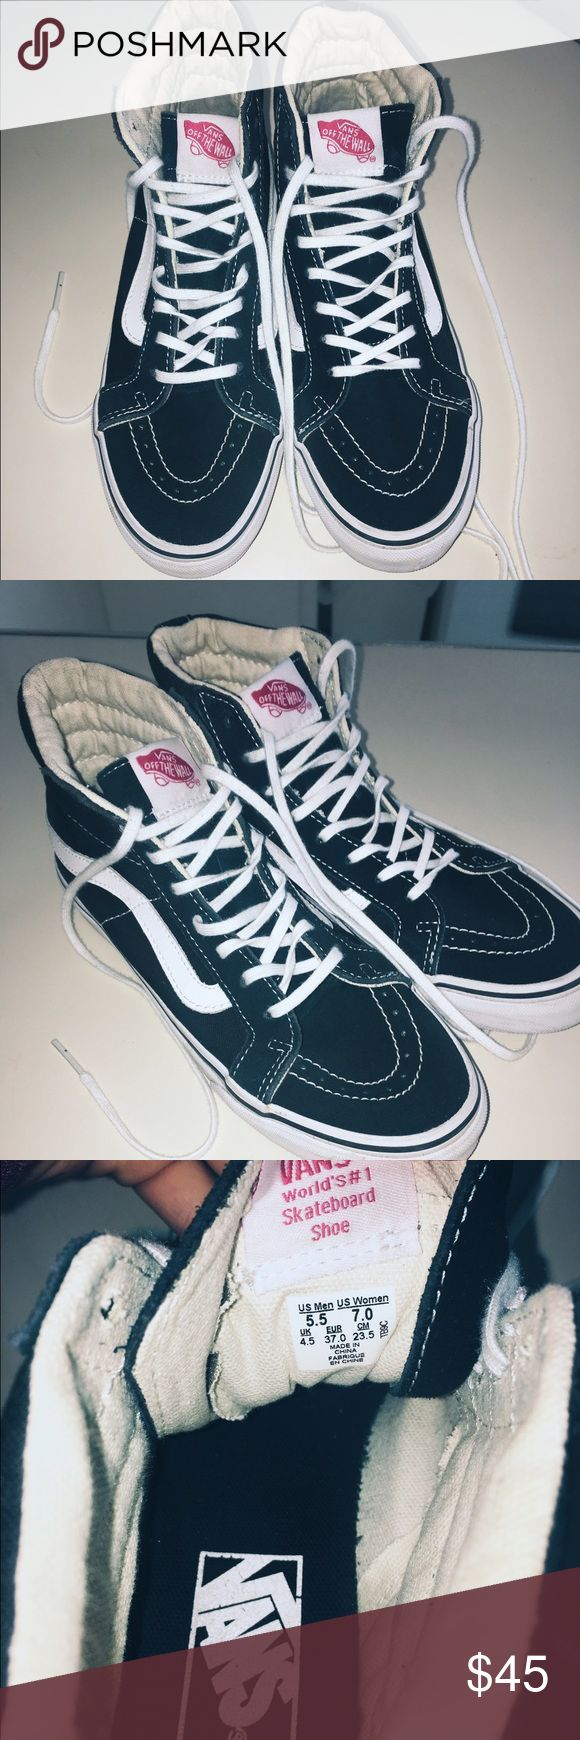 High top size 7 vans Black and white classic skate high vans woman's size 7 worn once. Looking to sell or trade for the version of these that aren't high tops Vans Shoes Sneakers